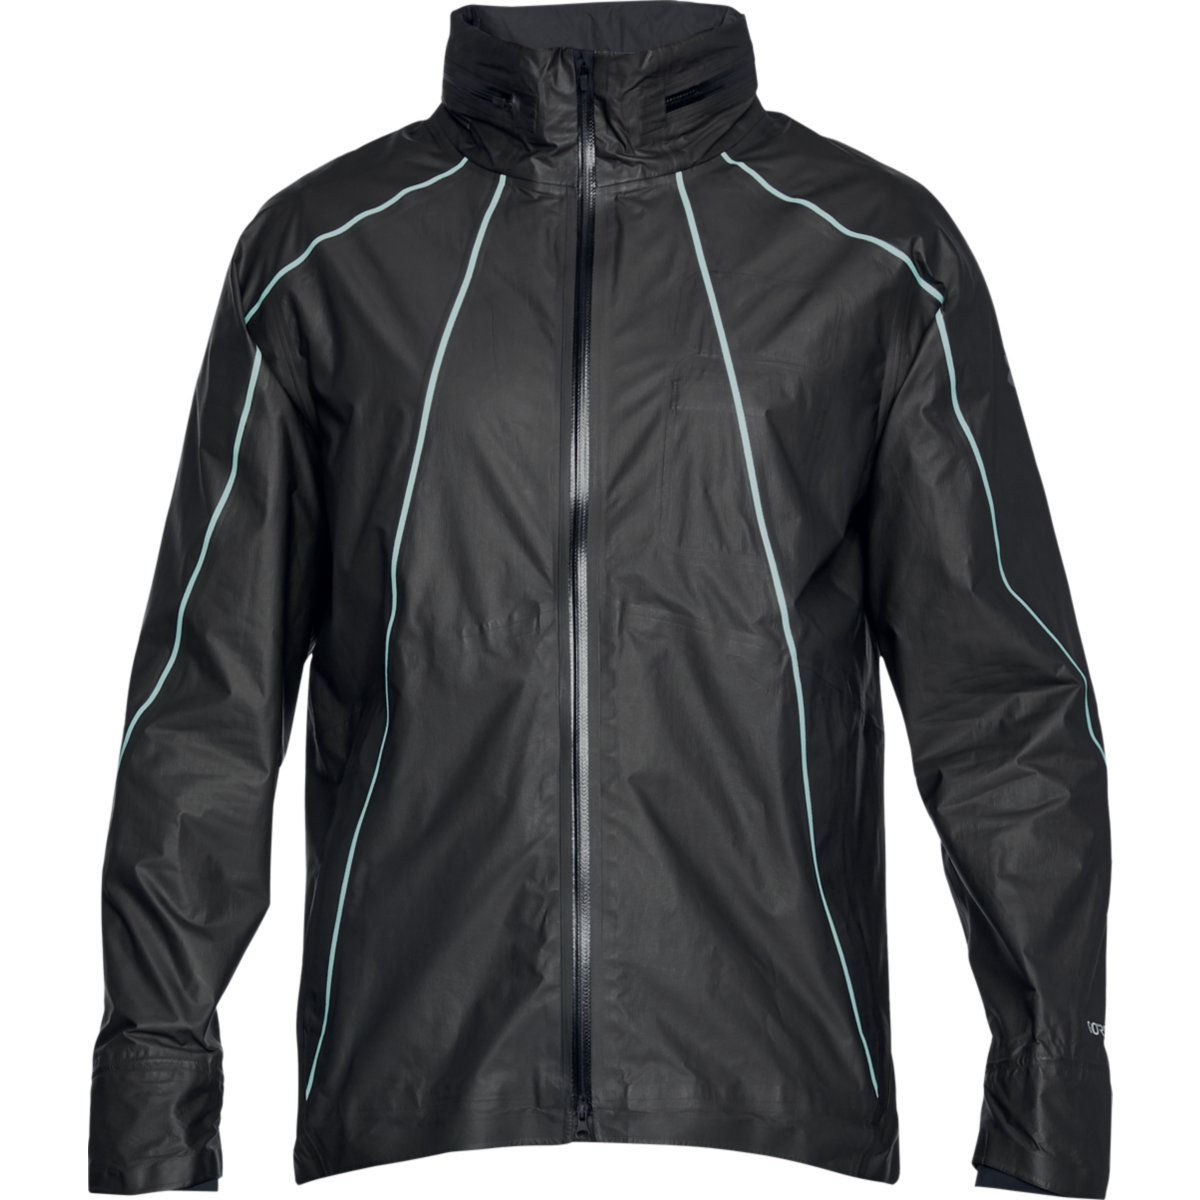 Under Armour Accelerate Gore-Tex Long Jacket - S